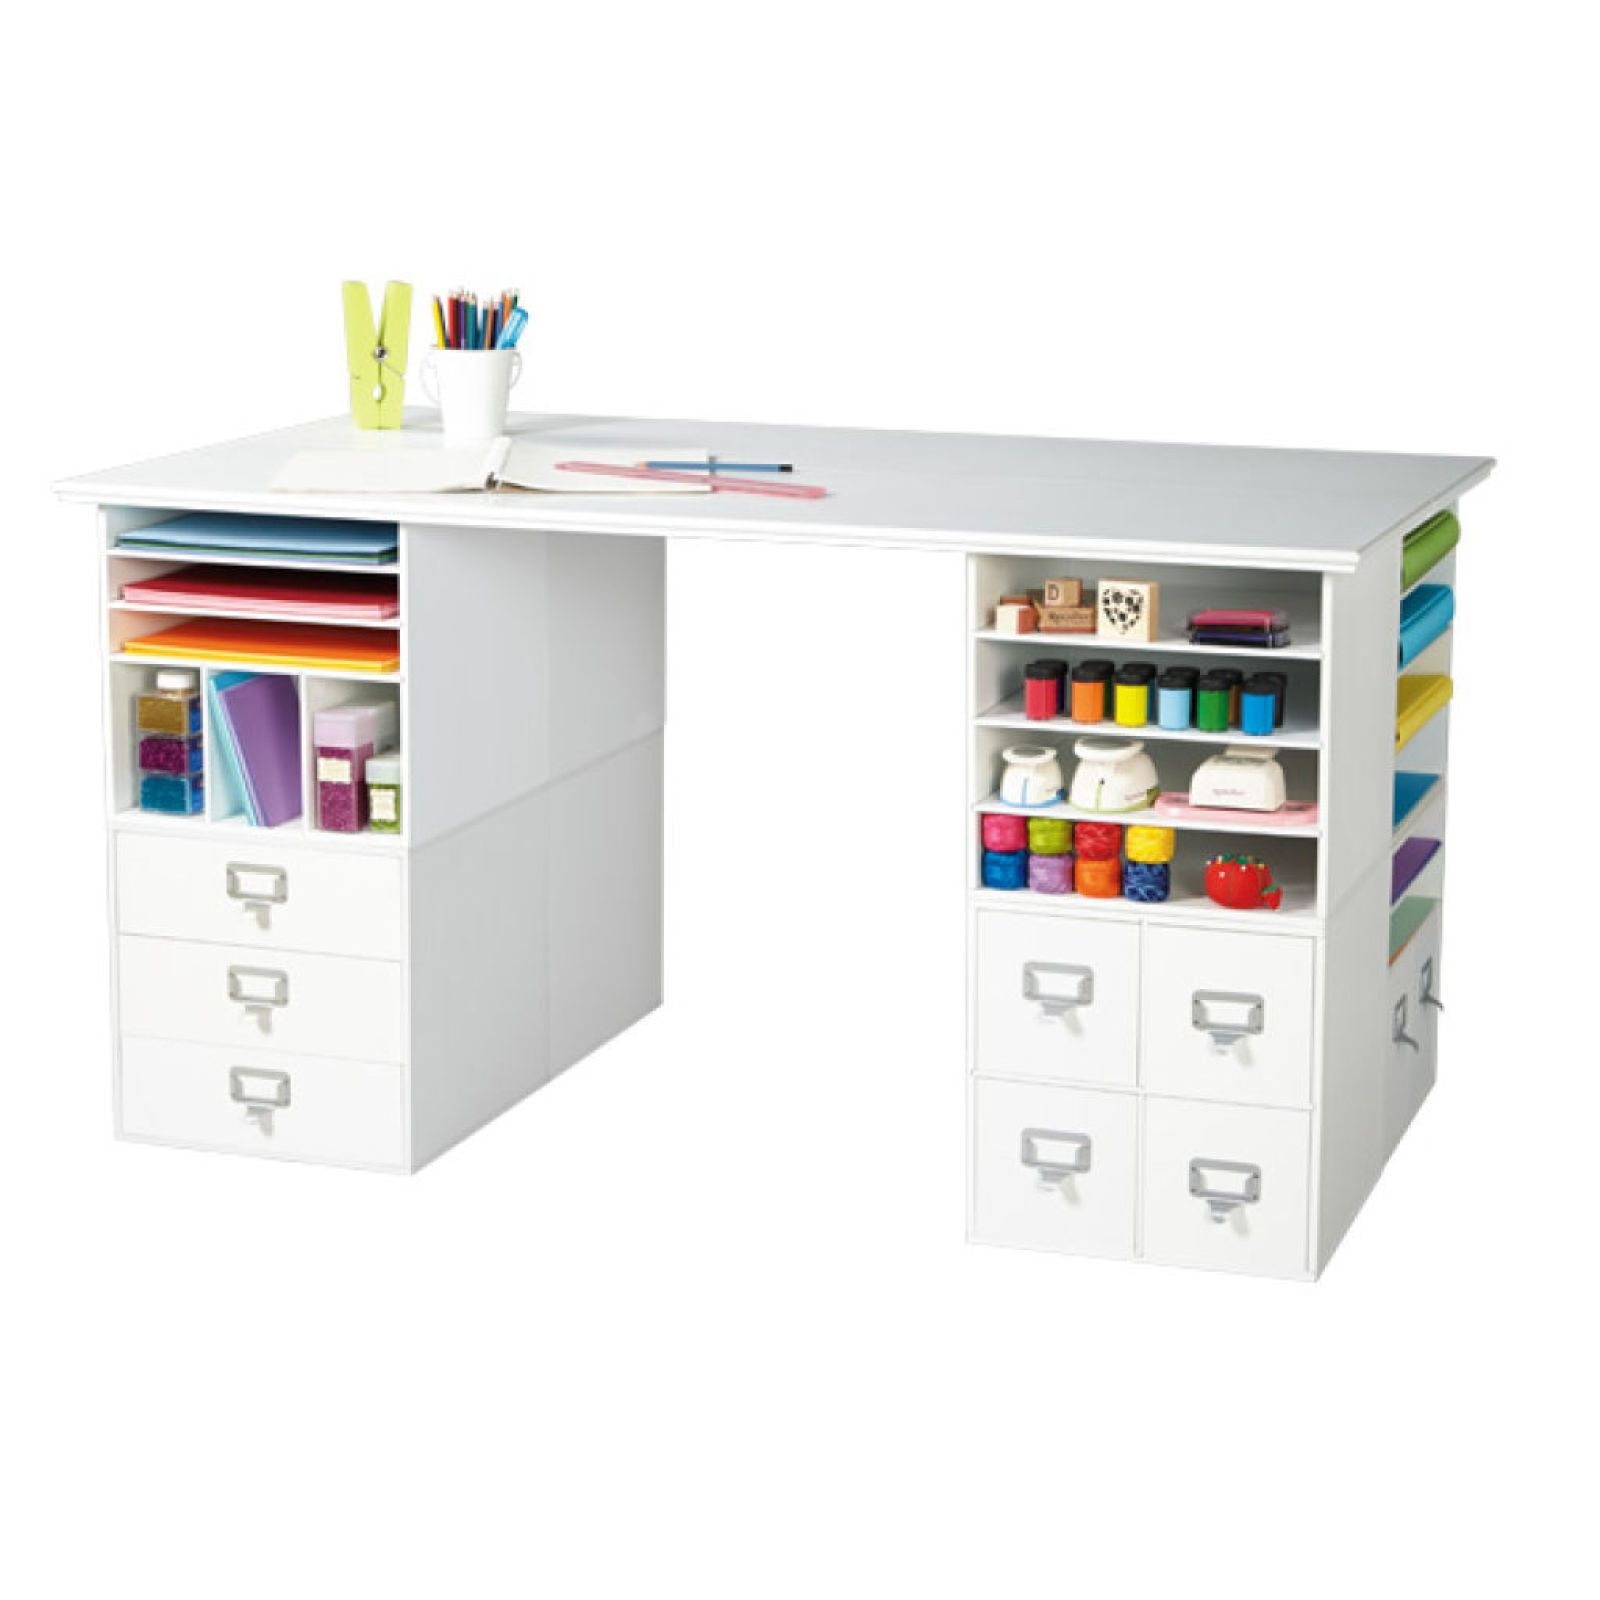 Recollections Large Desktop Panel Craft Tables With Storage Craft Room Storage Craft Storage